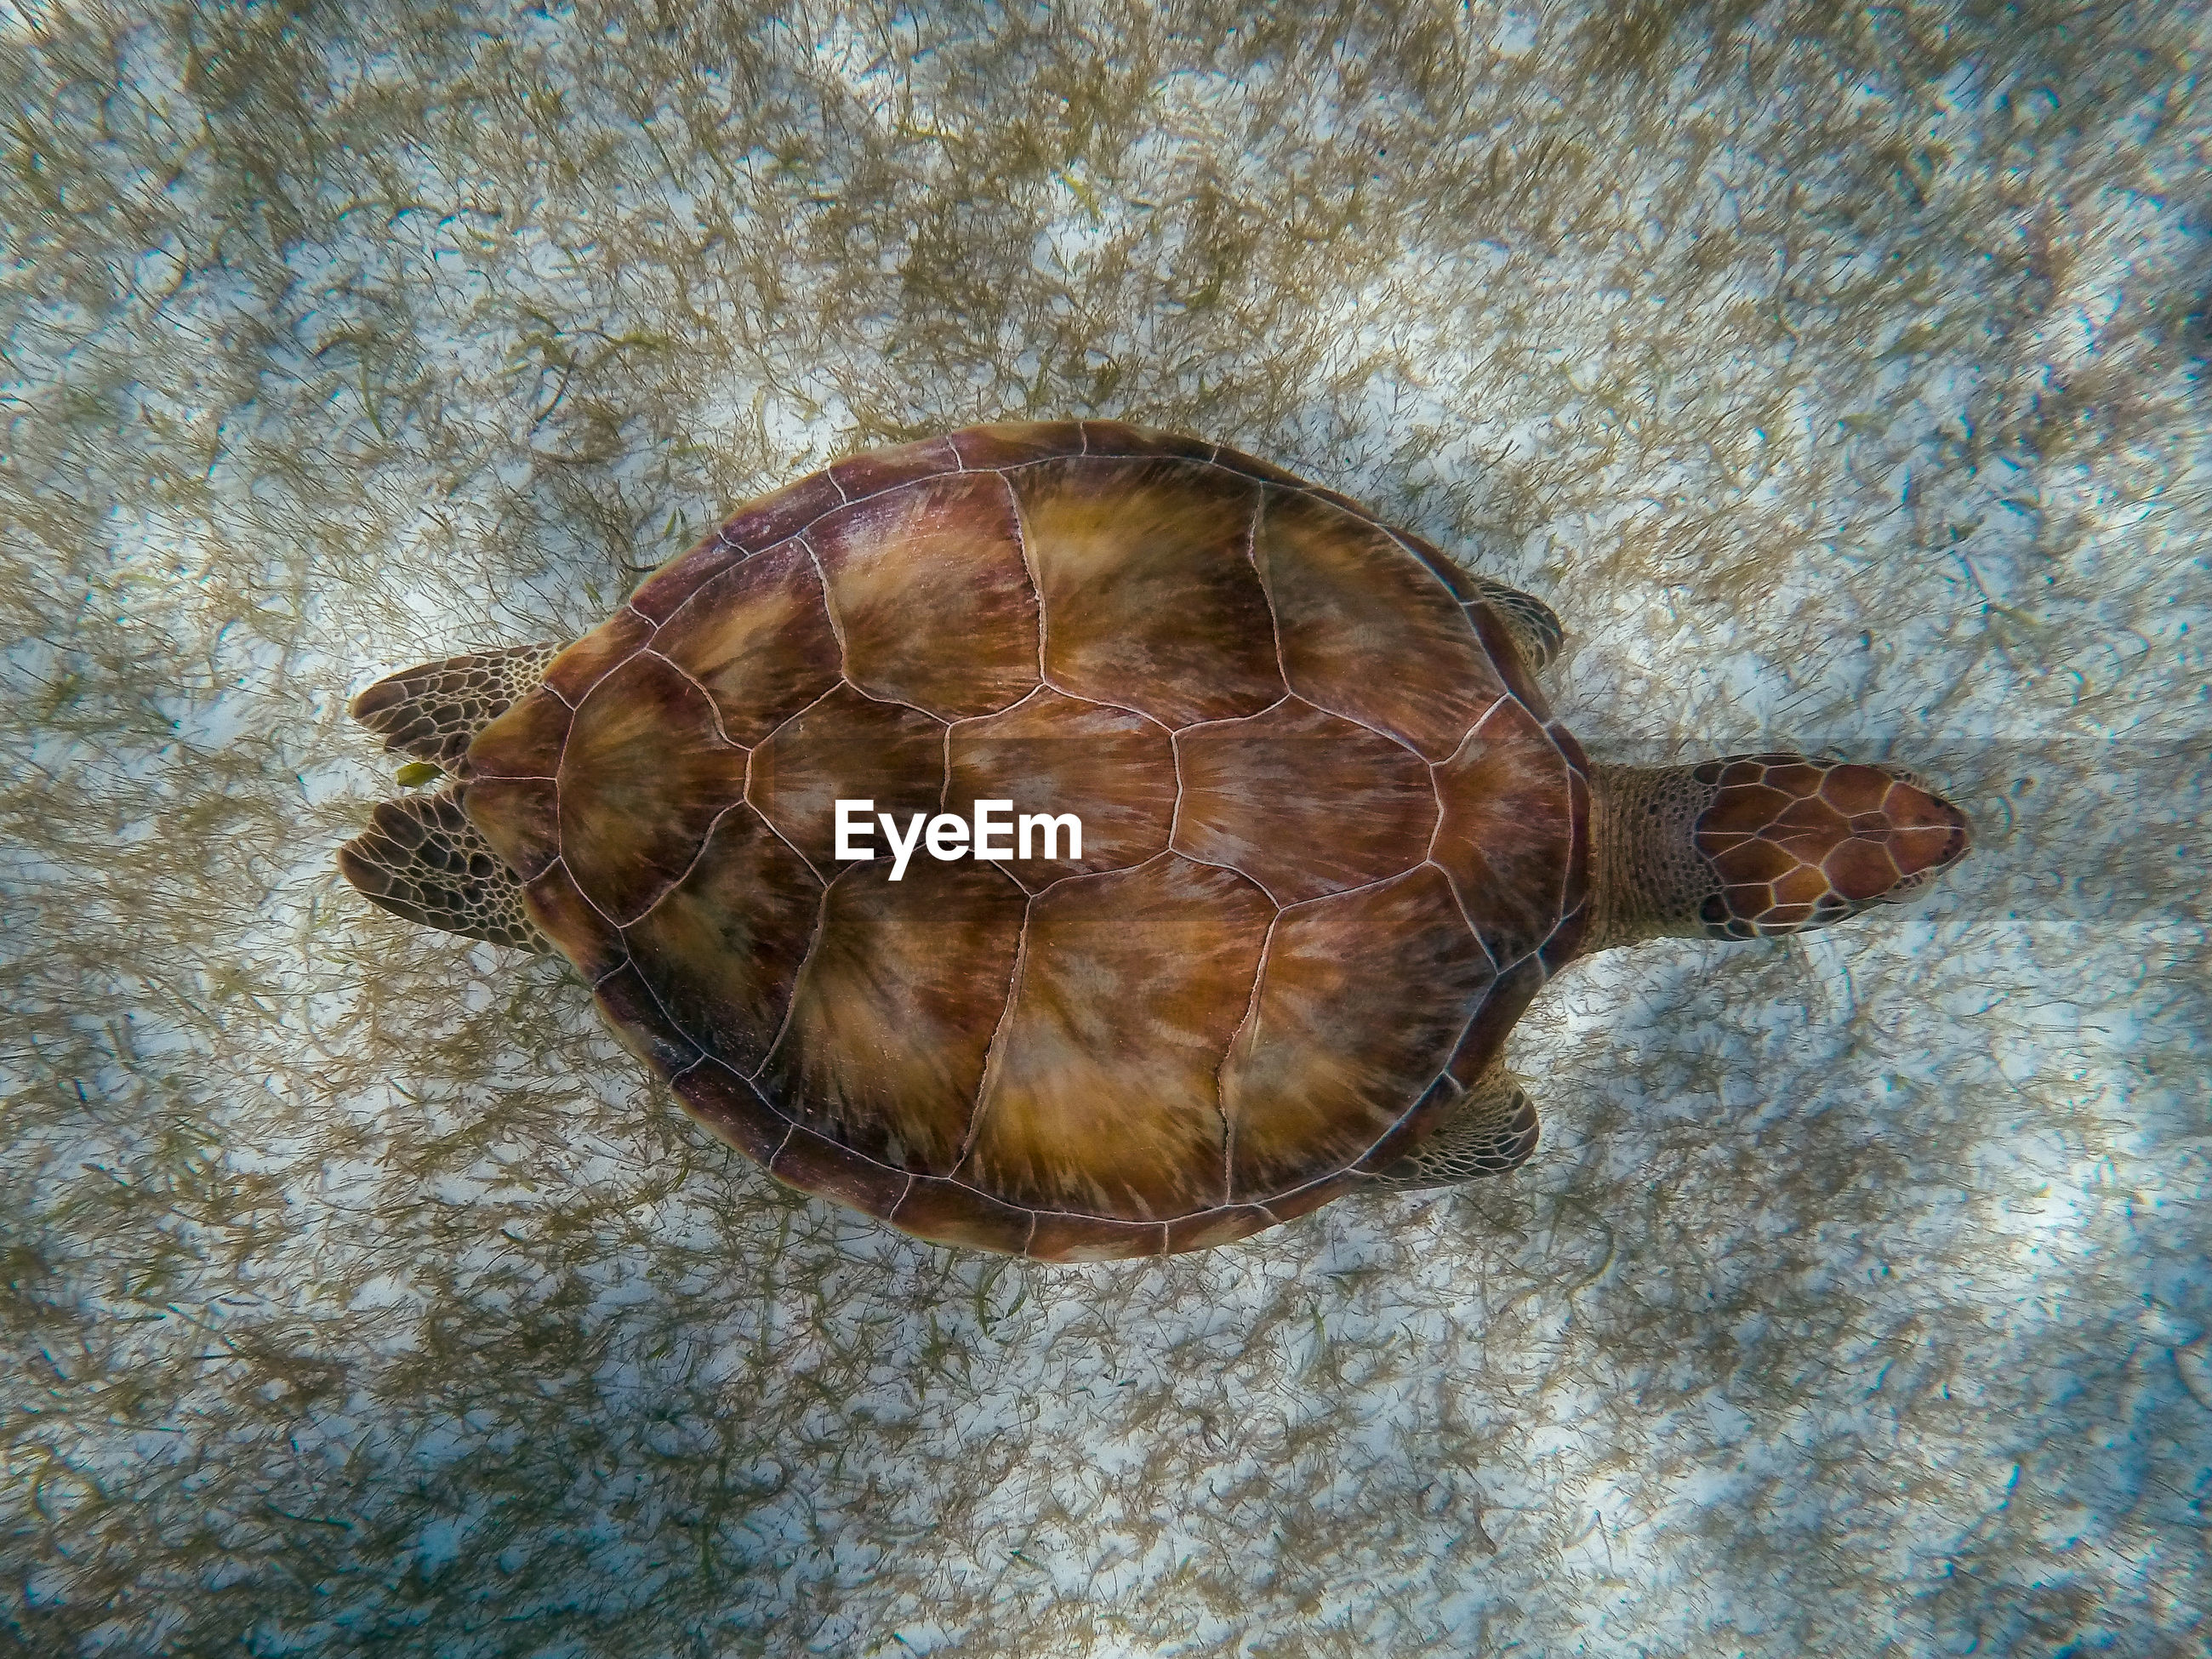 High angle view of a turtle on ground